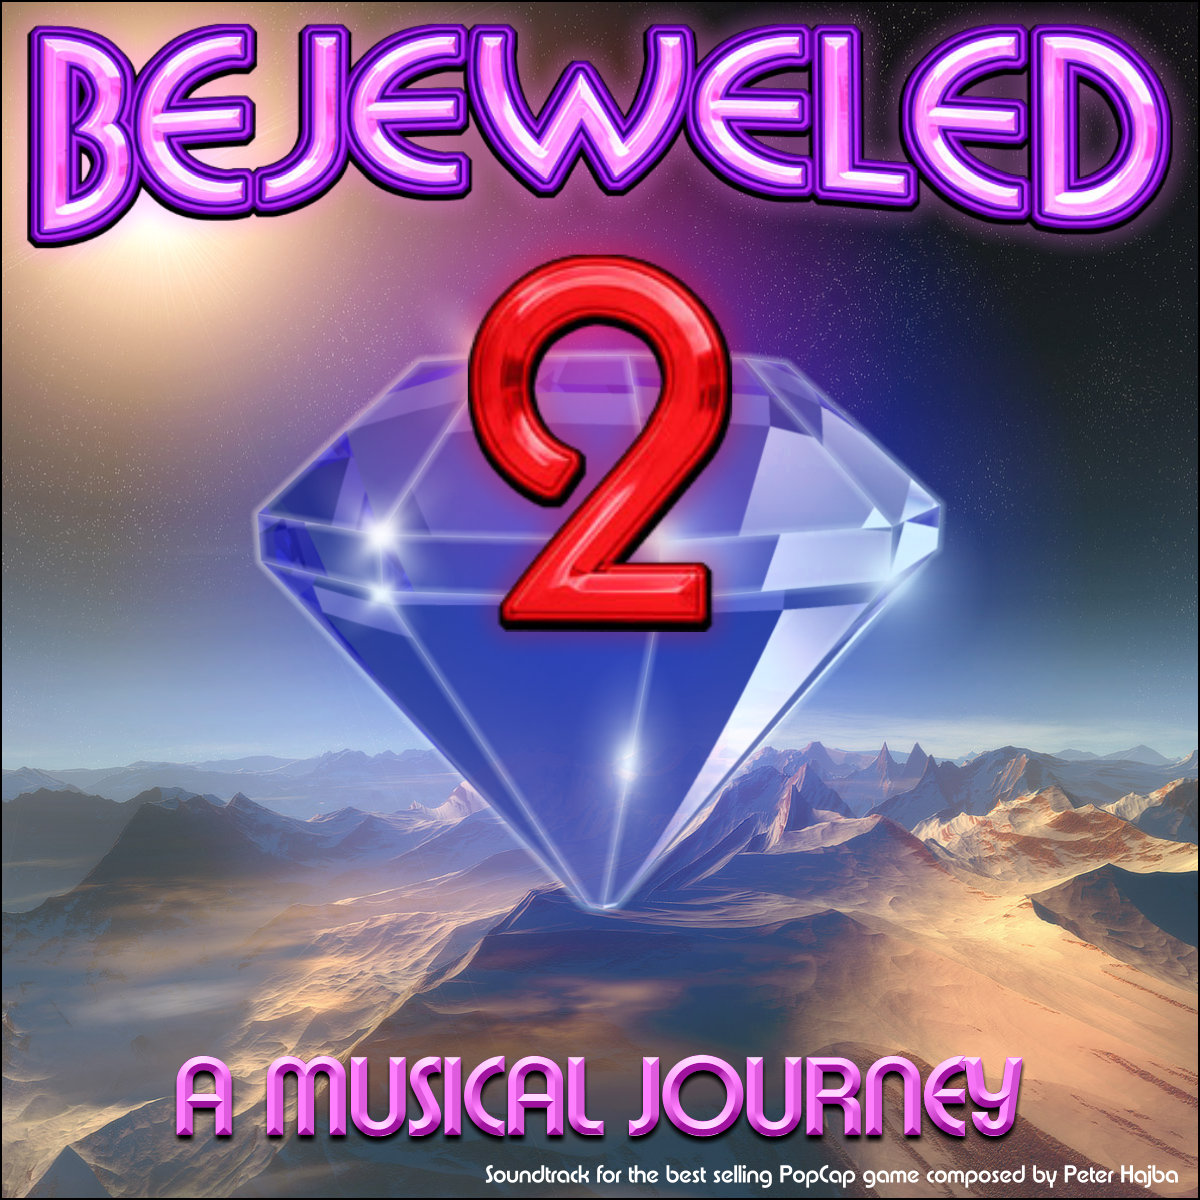 be jeweled 2